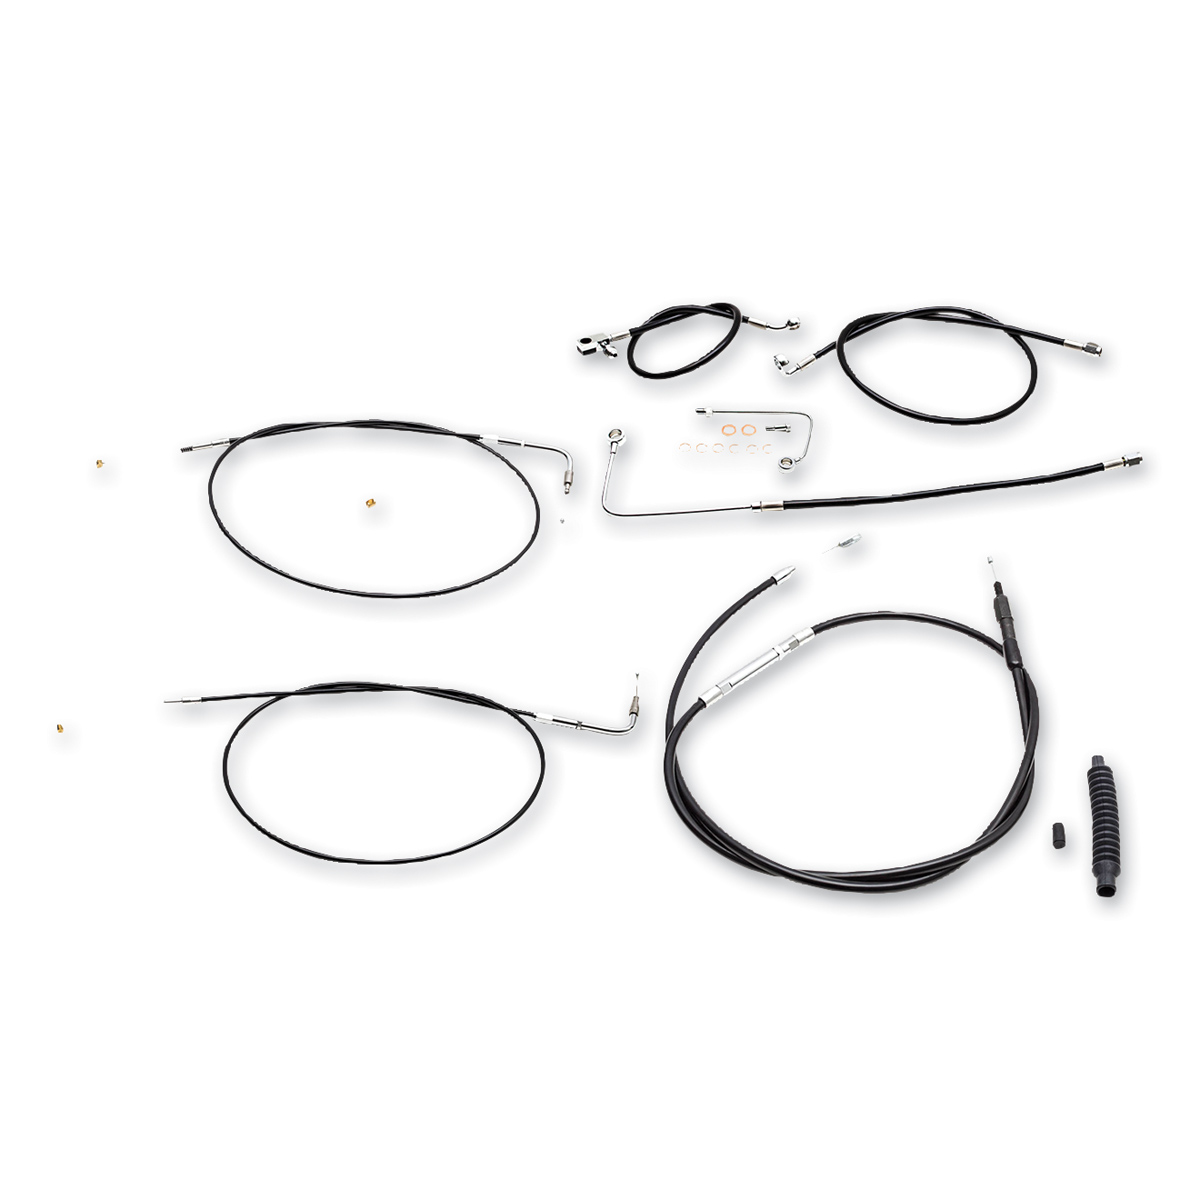 LA Choppers Stainless Steel/Vinyl Cable/Brake Line Kit for 15″-17″ Ape Hangers